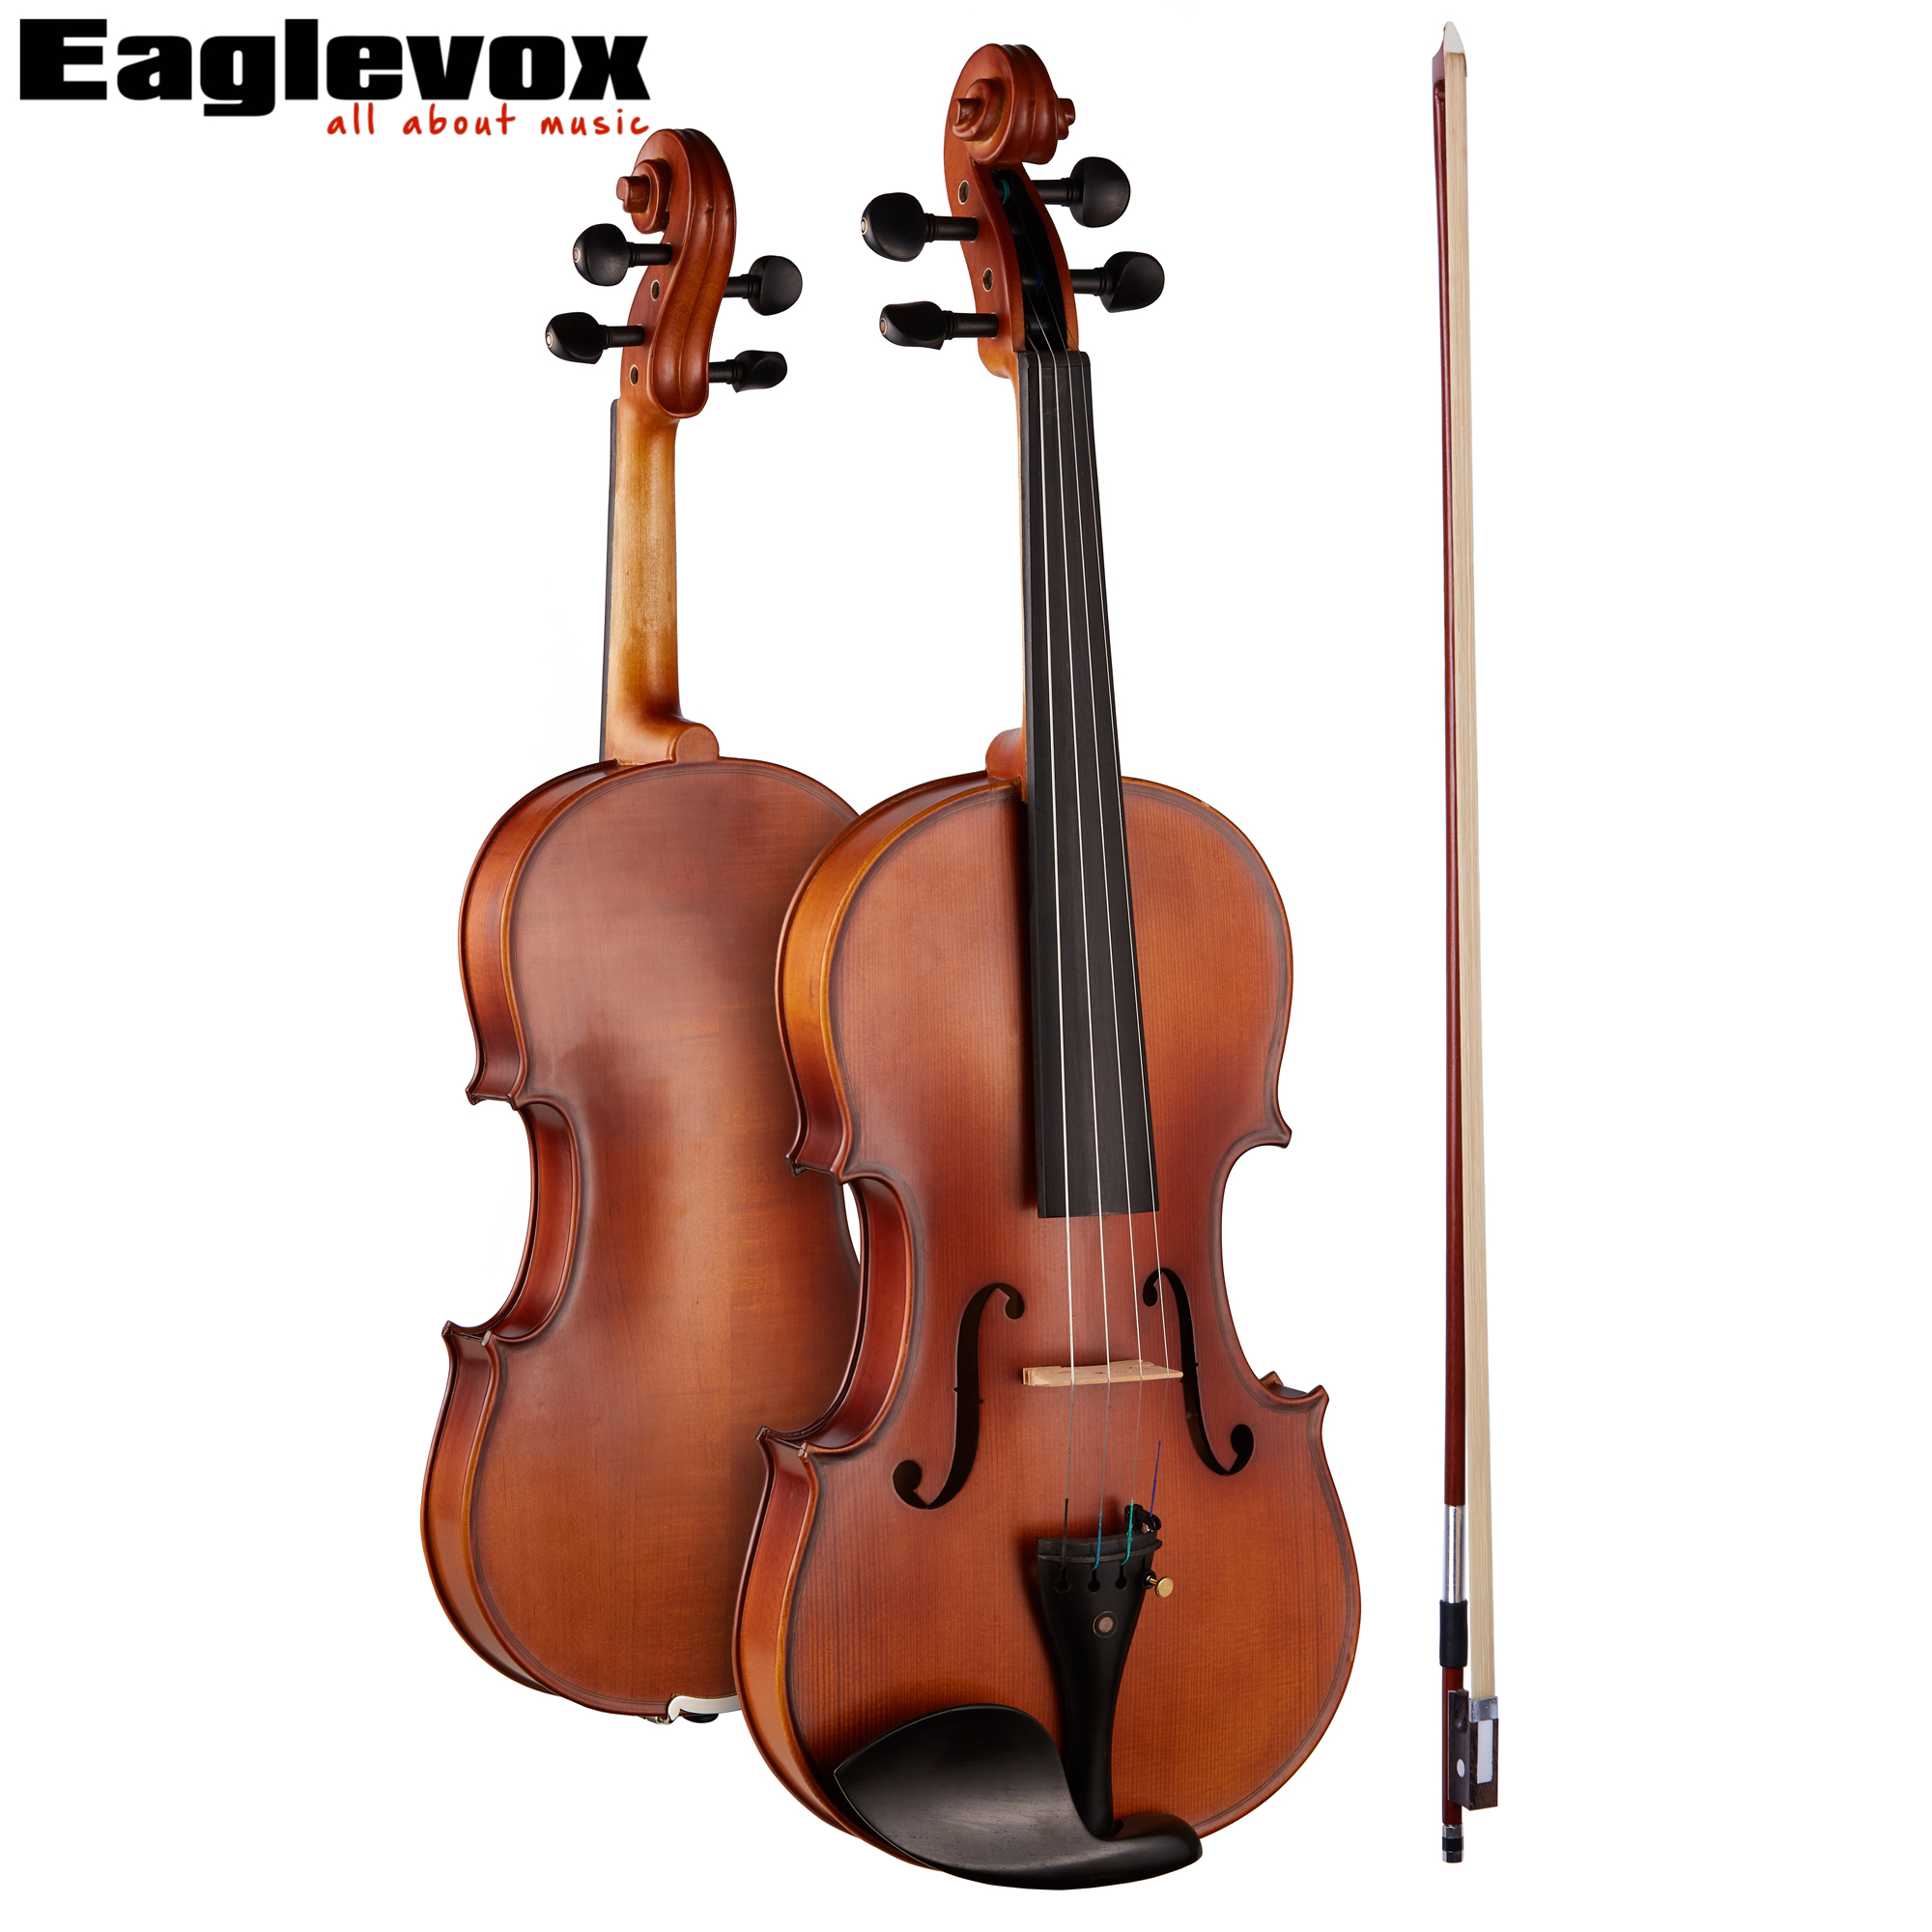 4/4 Professional Violin Pinus Bungeana Top with Hard Case Maple Back and Sides handmade new solid maple wood brown acoustic violin violino 4 4 electric violin case bow included